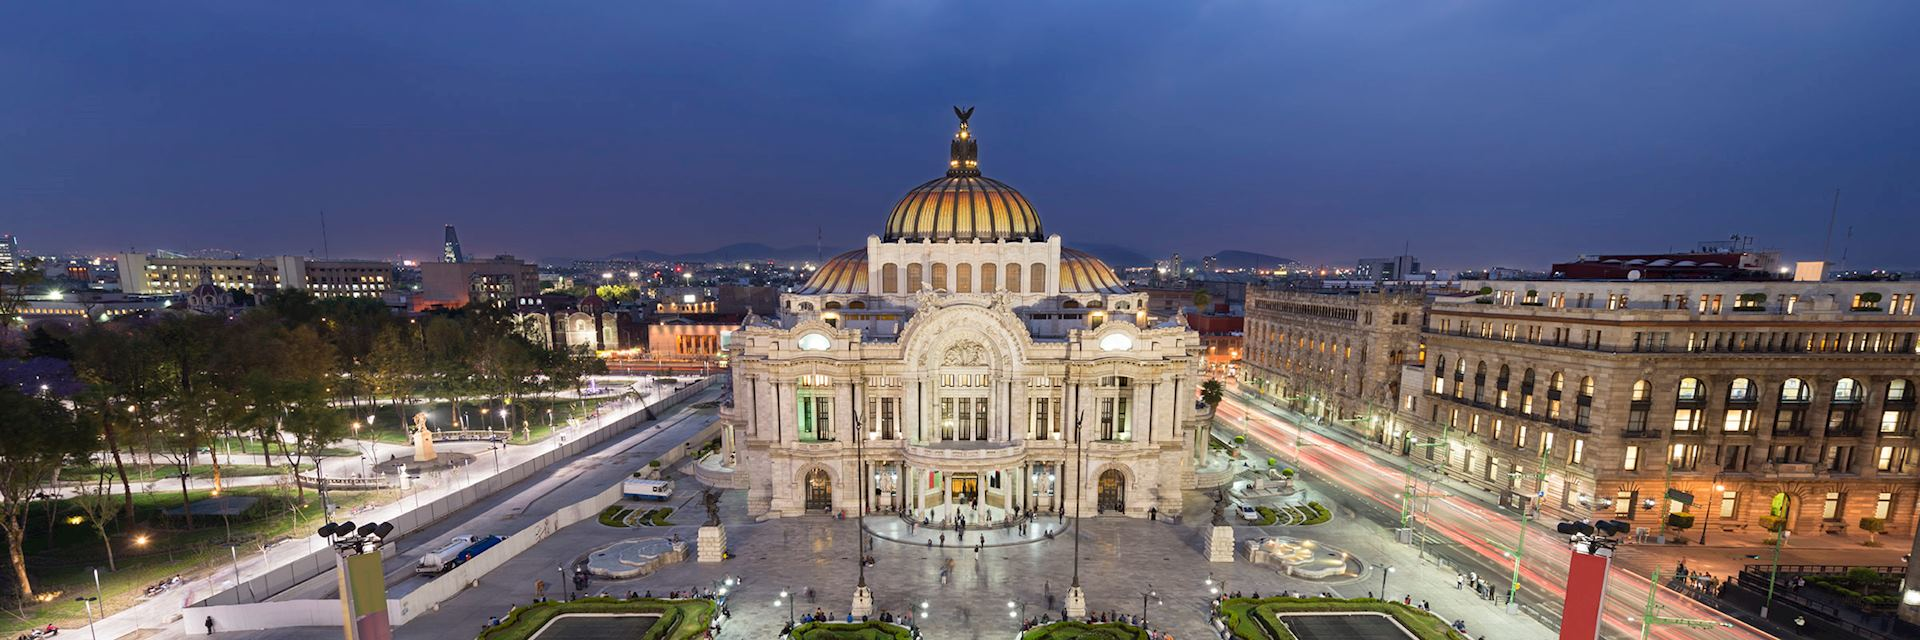 Palacio de Ballas Artes, Mexico City